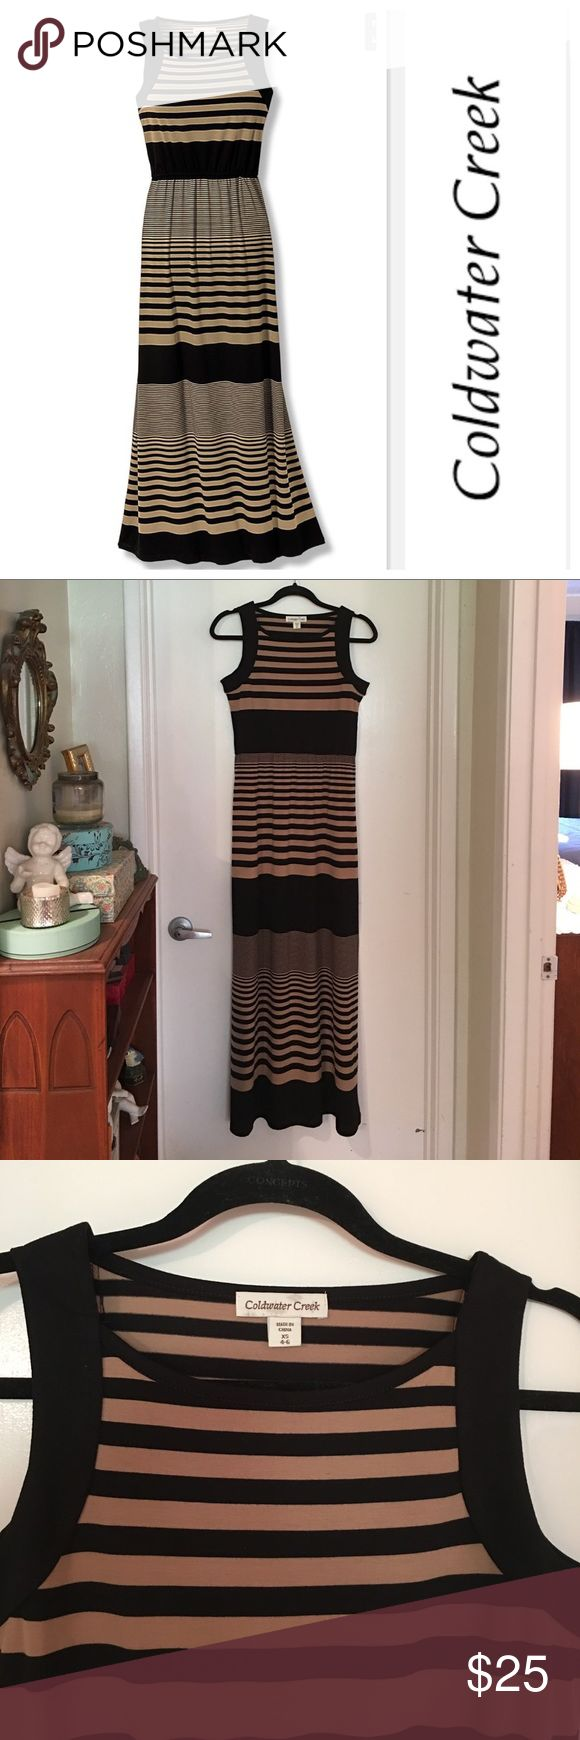 "NEW Maxi Dress!!! NWOT Coldwater Creek ""Sunday in Brooklyn"" Maxidress!!  Never worn, tags removed!  Size XS (4-6). Beautiful classy striped beige and black!  Flattering fit!  Armpit to armpit measures 17"". Length from shoulder to bottom hem is 56"".  Elastic gathered at waist.  Perfect summer occasion dress!! 👒👠🕶 Coldwater Creek Dresses Maxi"